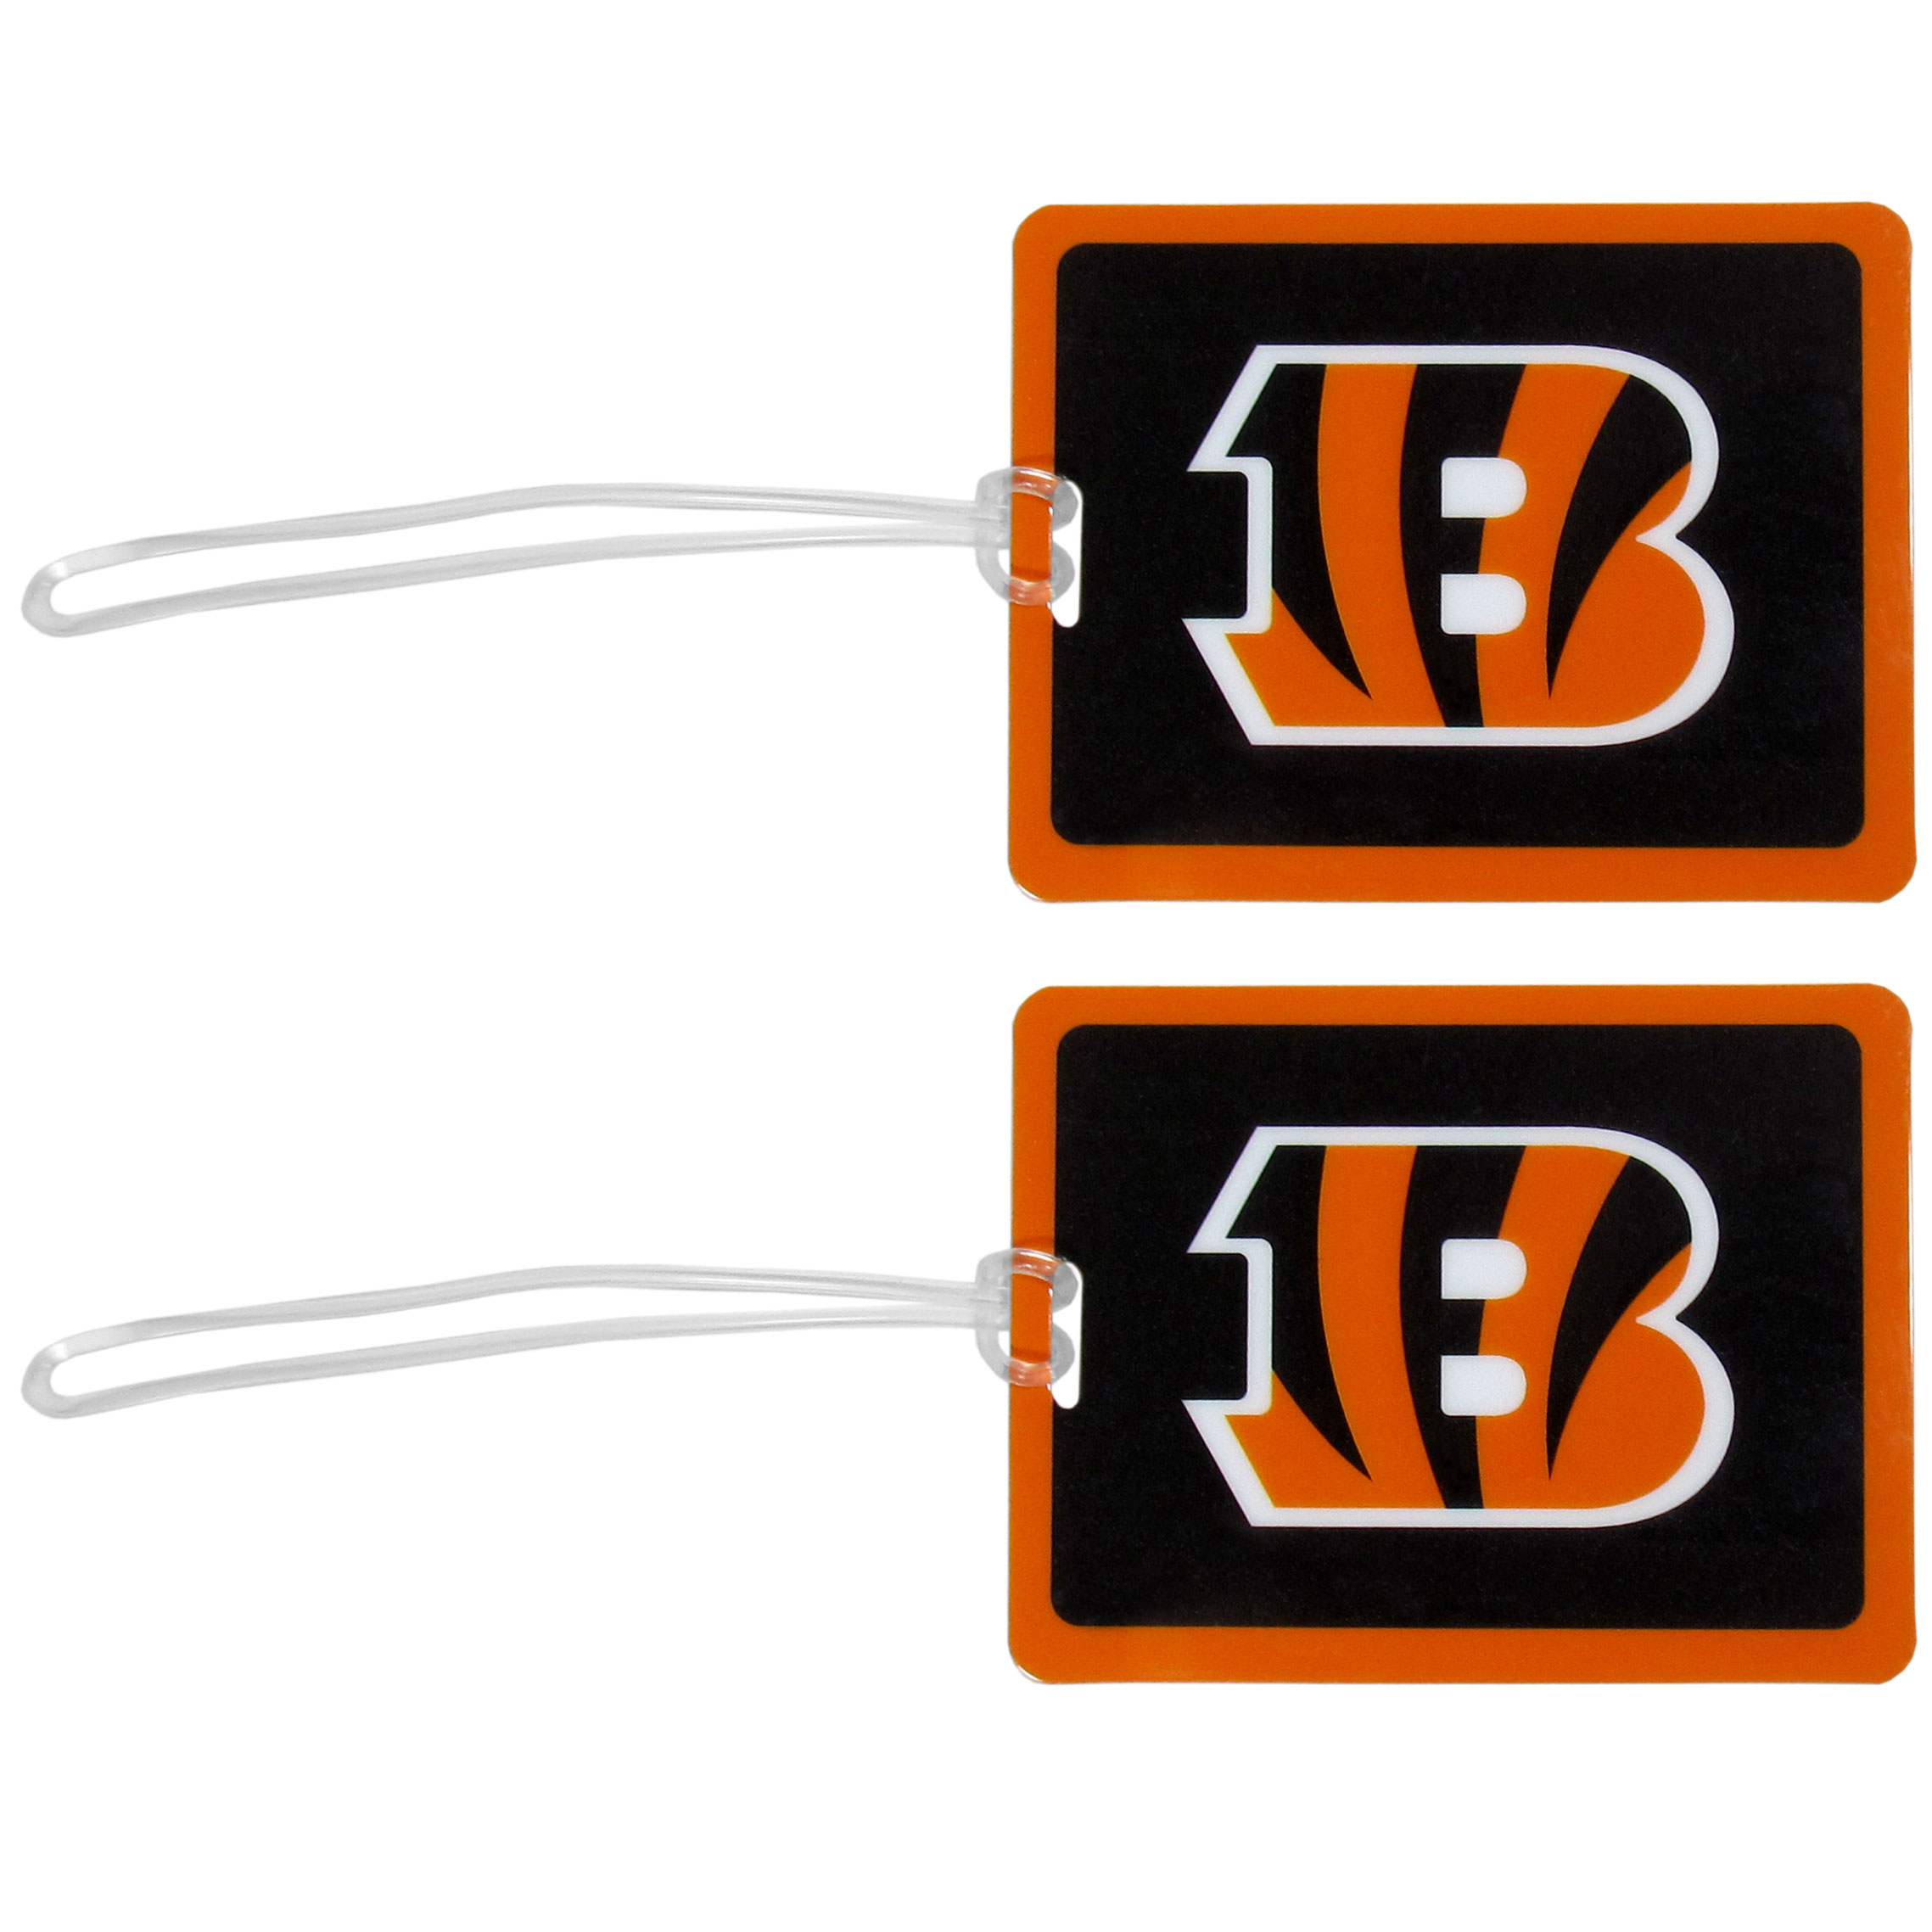 Cincinnati Bengals Vinyl Luggage Tag, 2pk - Tired of trying to spot your suitcase or bag in a sea of luggage? Try our large and colorful Cincinnati Bengals luggage tags. The tag is 4x3 inches and has a 5 inch cord to attach it easily to your bags, backpacks or luggage. The front of the tag features the team logo in a bright, team colored background and you can write you name, address and phone number on the back of the tag.